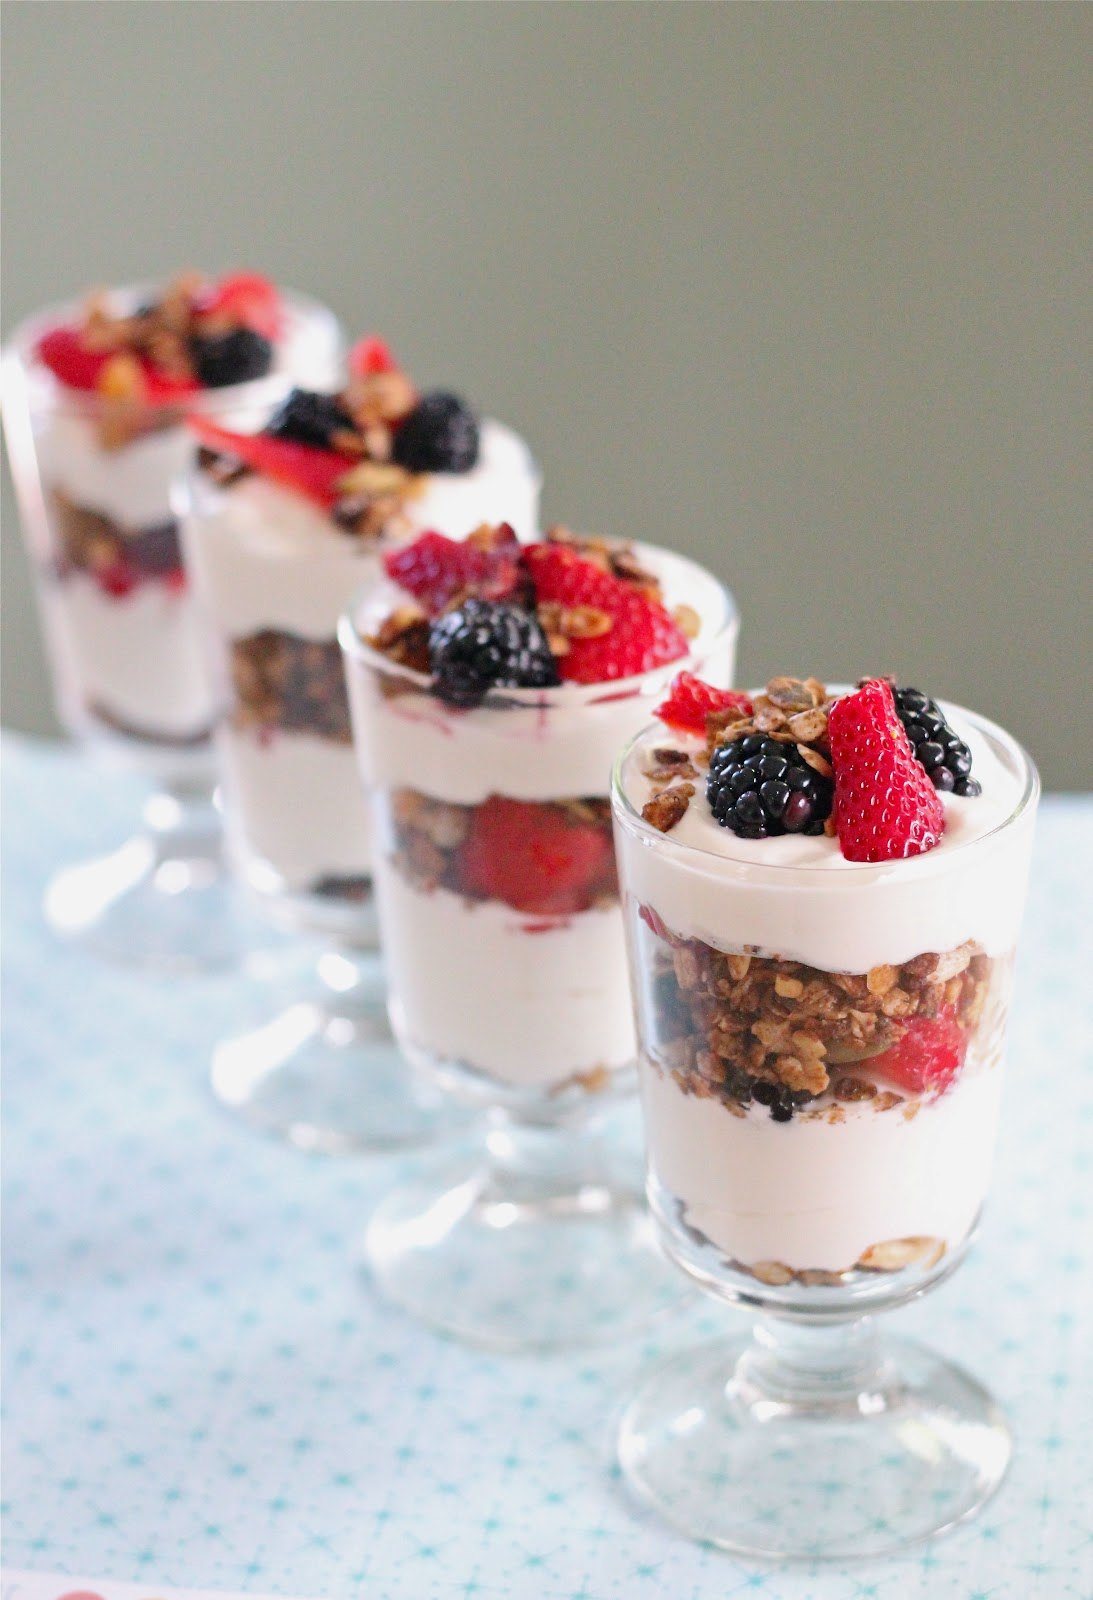 Yogurt and mixed berry parfait